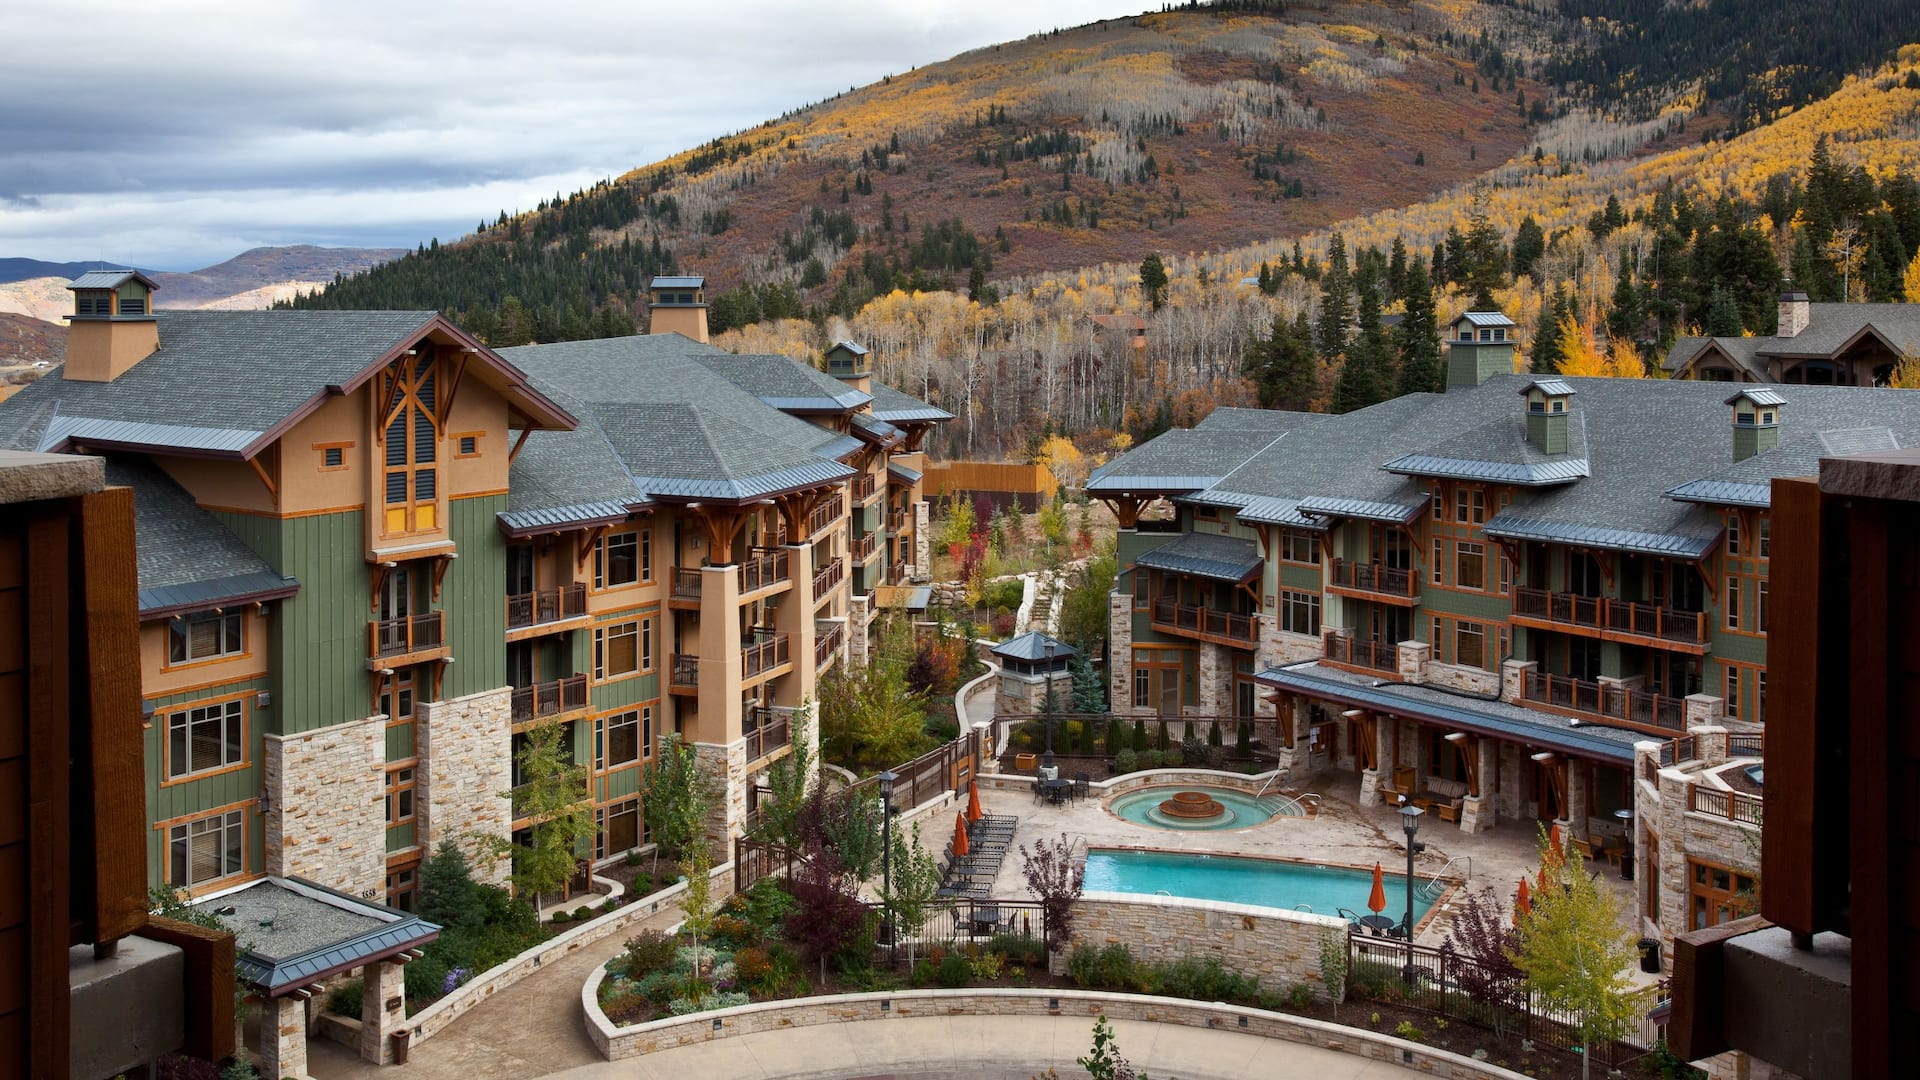 Exterior view of park city hotel Hyatt Centric Park City